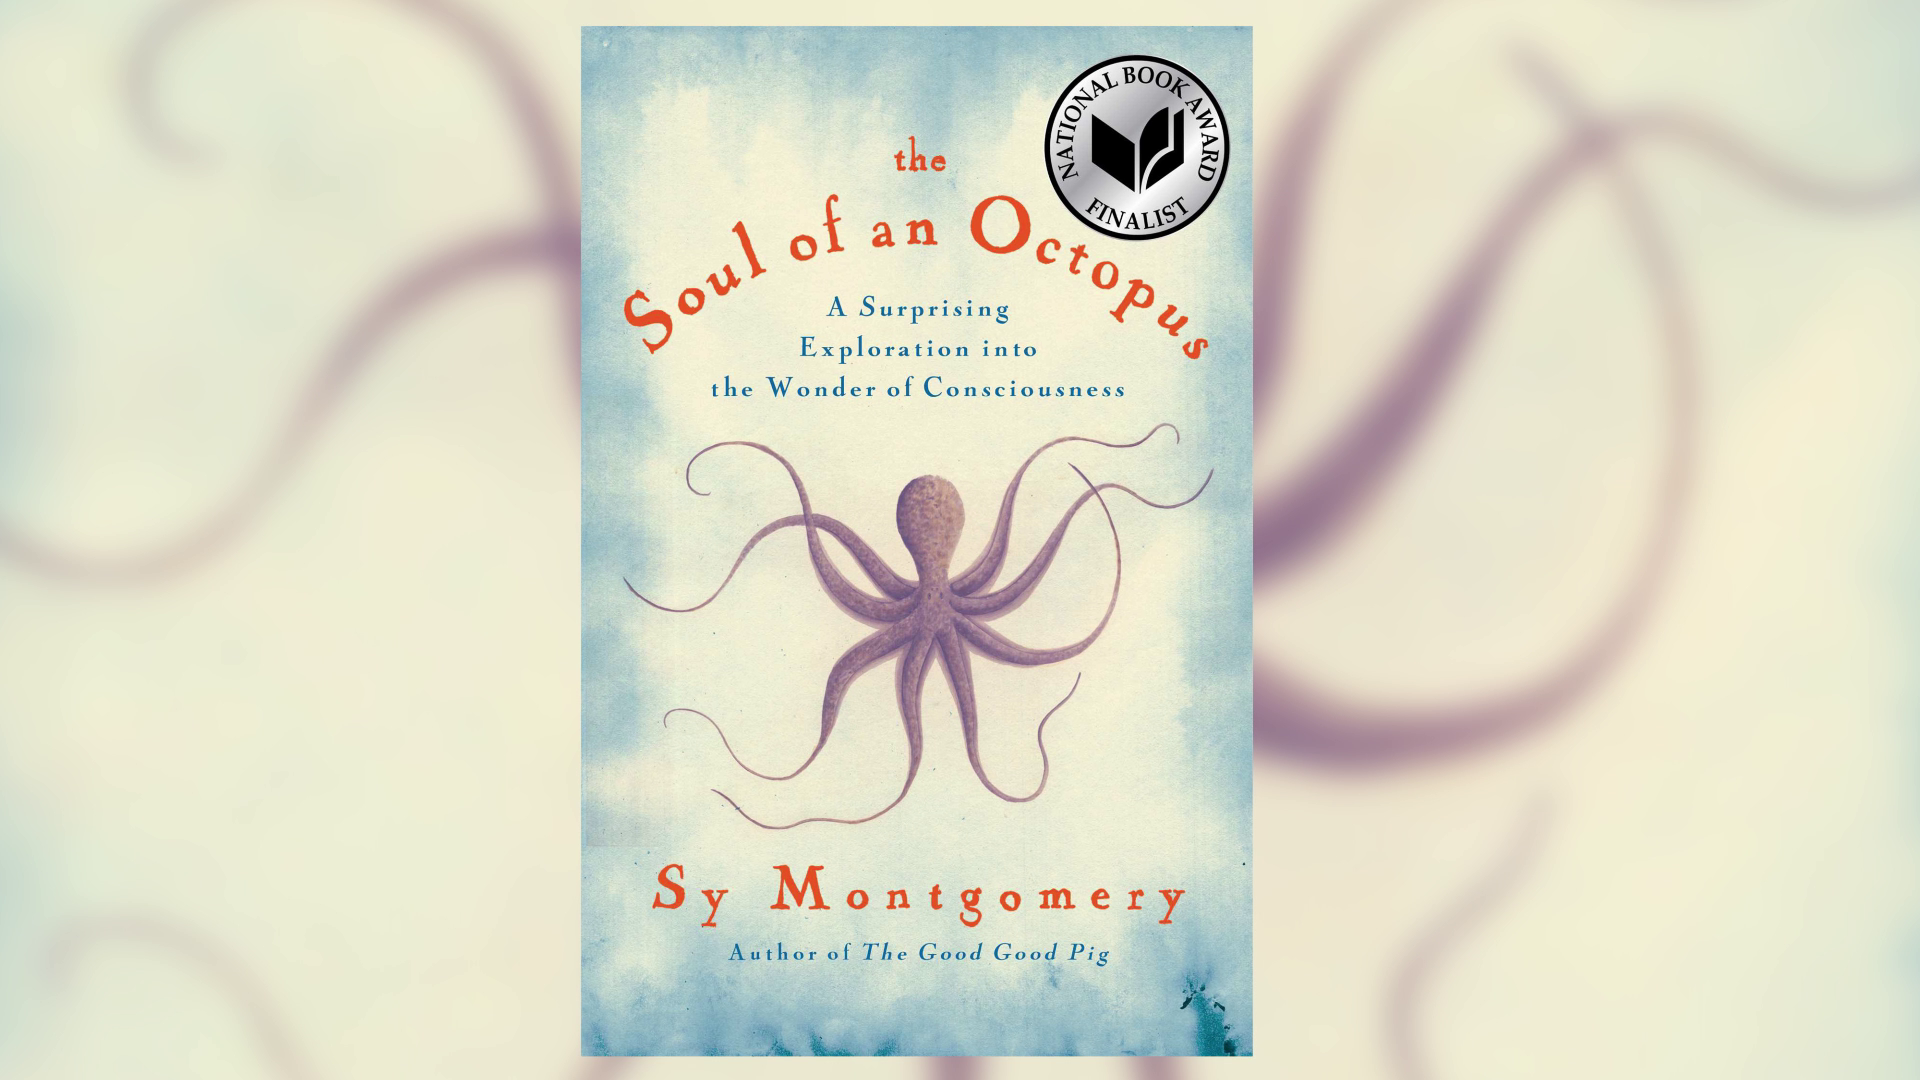 Discover the 'Soul of an Octopus' with Sy Montgomery